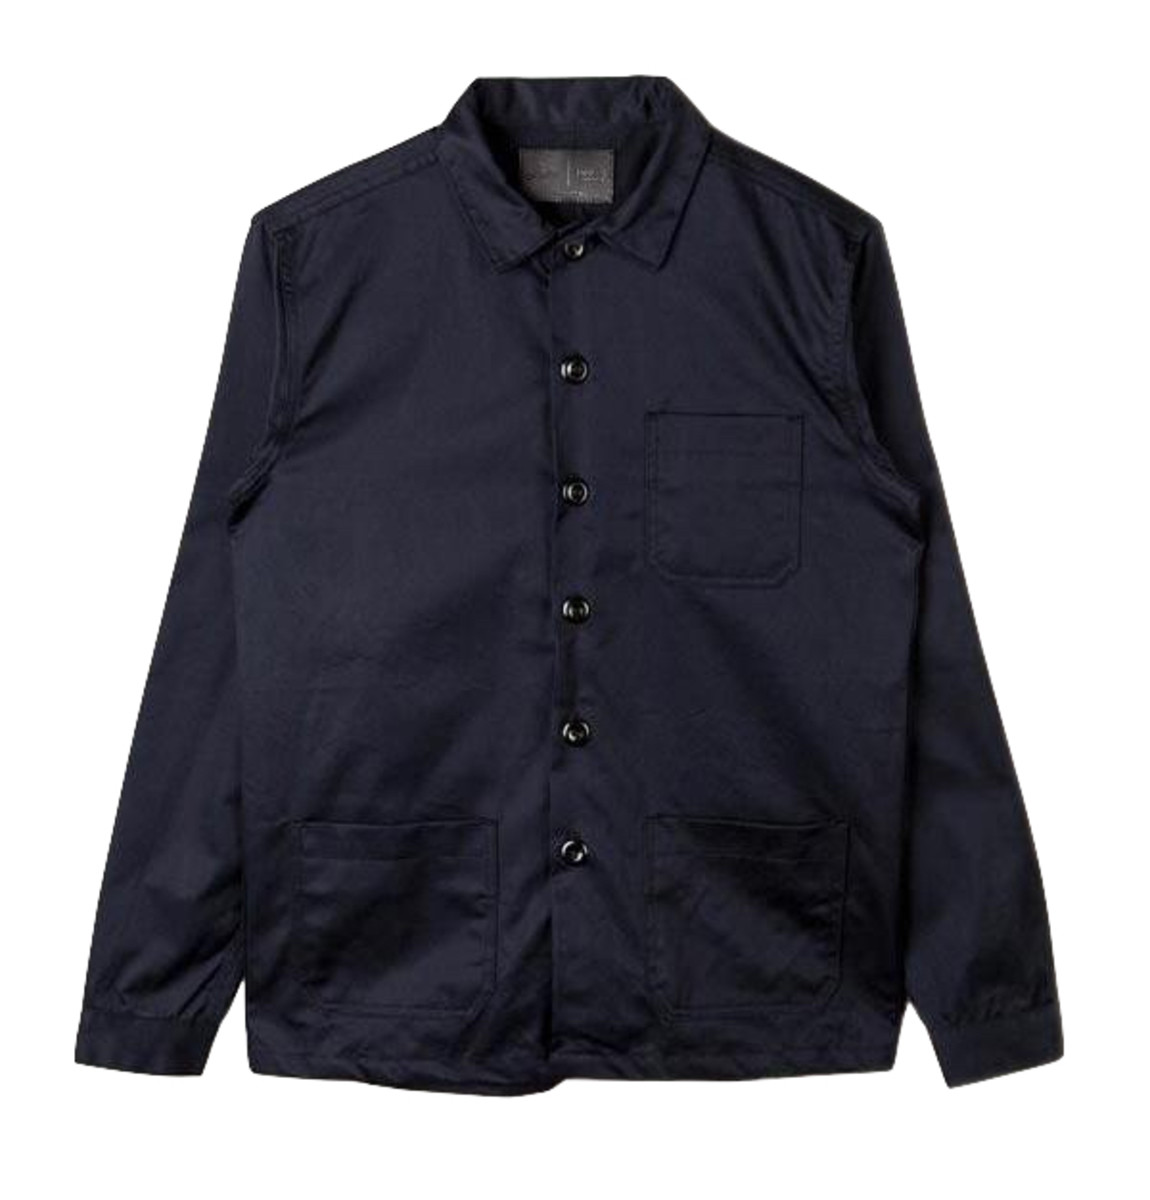 TG_3Sixteen_Shop_Jacket-1_900x